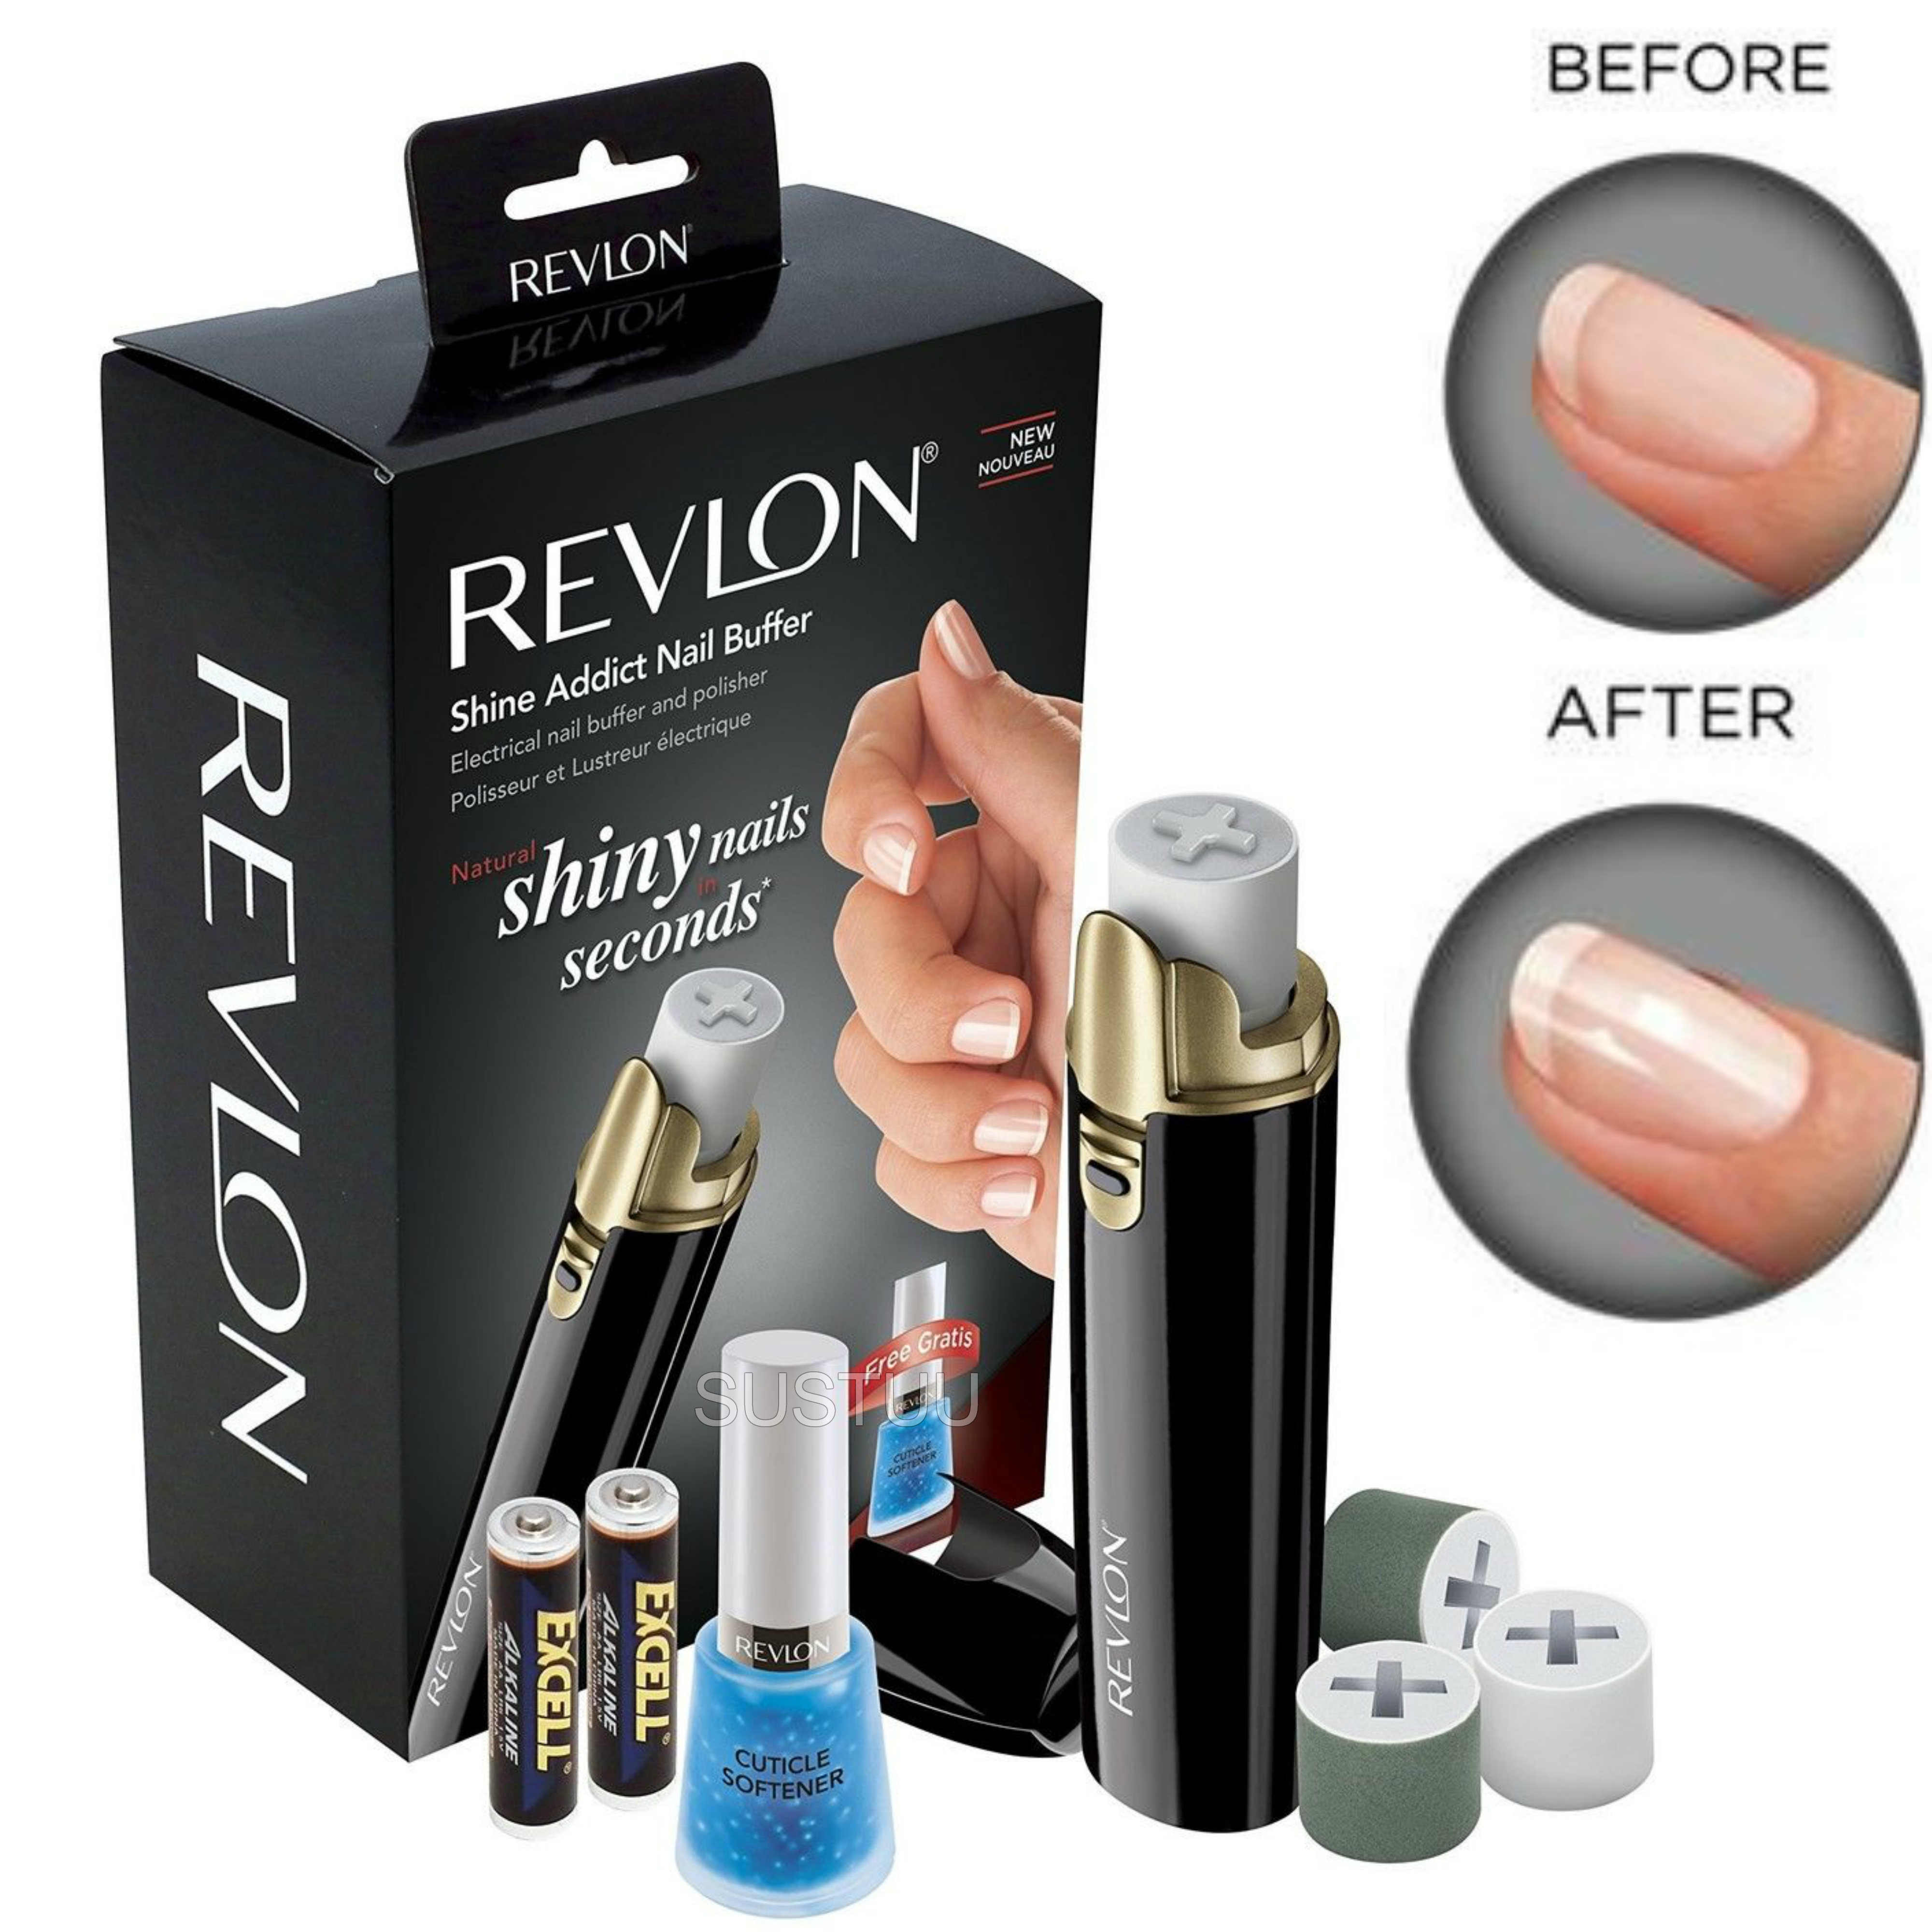 Revlon Shine Addict Electirc Nail Buffer & Polisher | Fast Manicure-Pedicure Tools